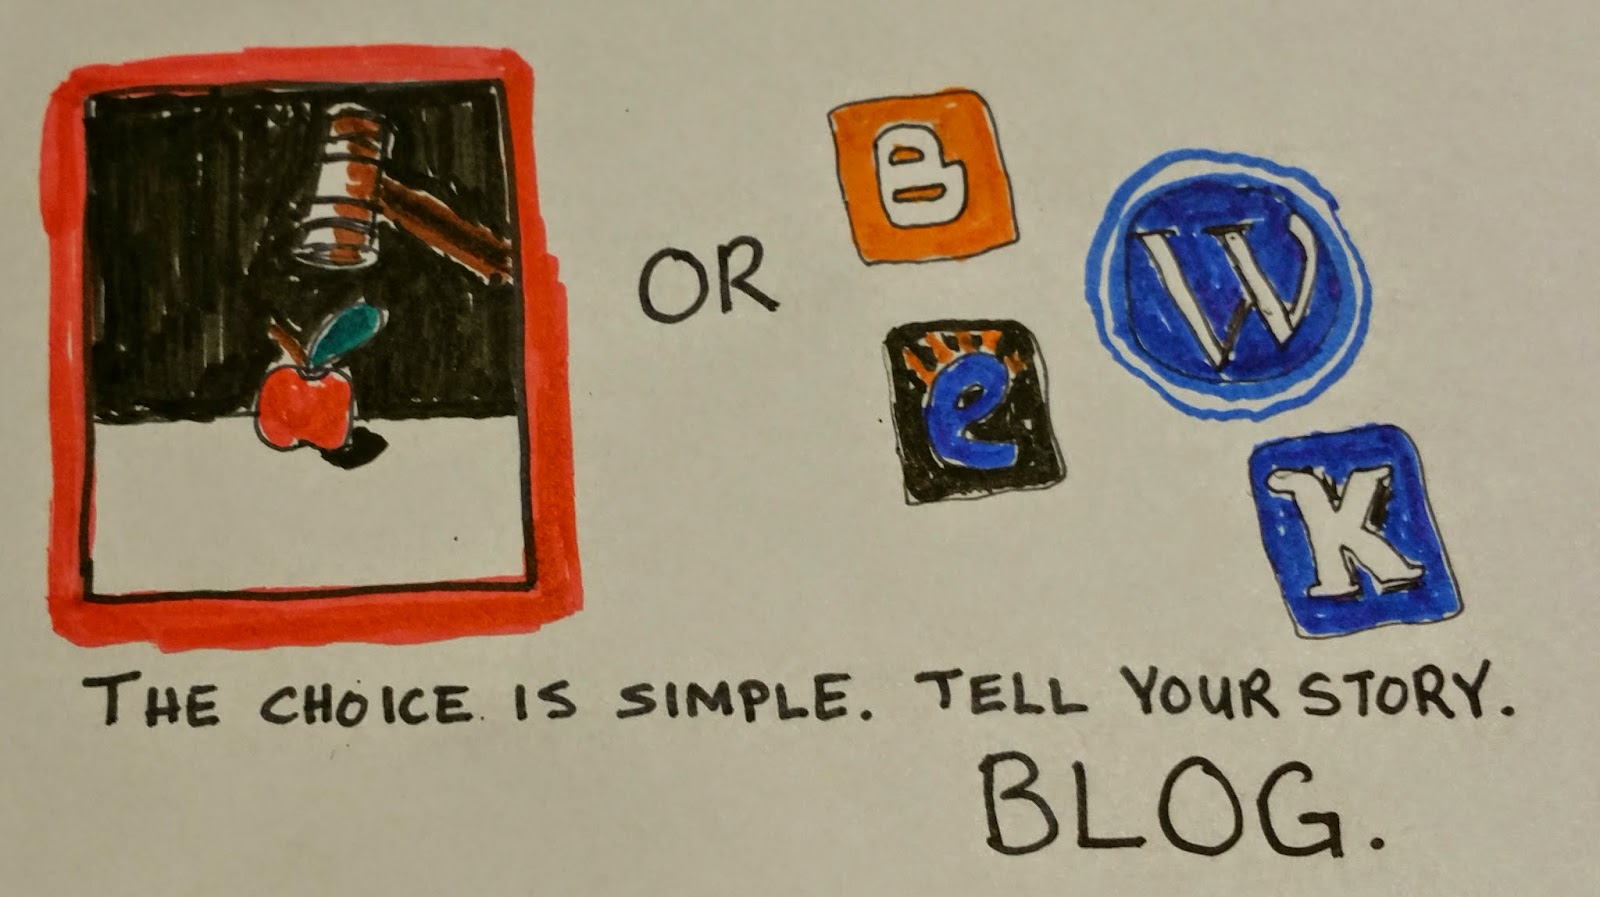 The Choice is Simple. Tell Your Story. Blog.